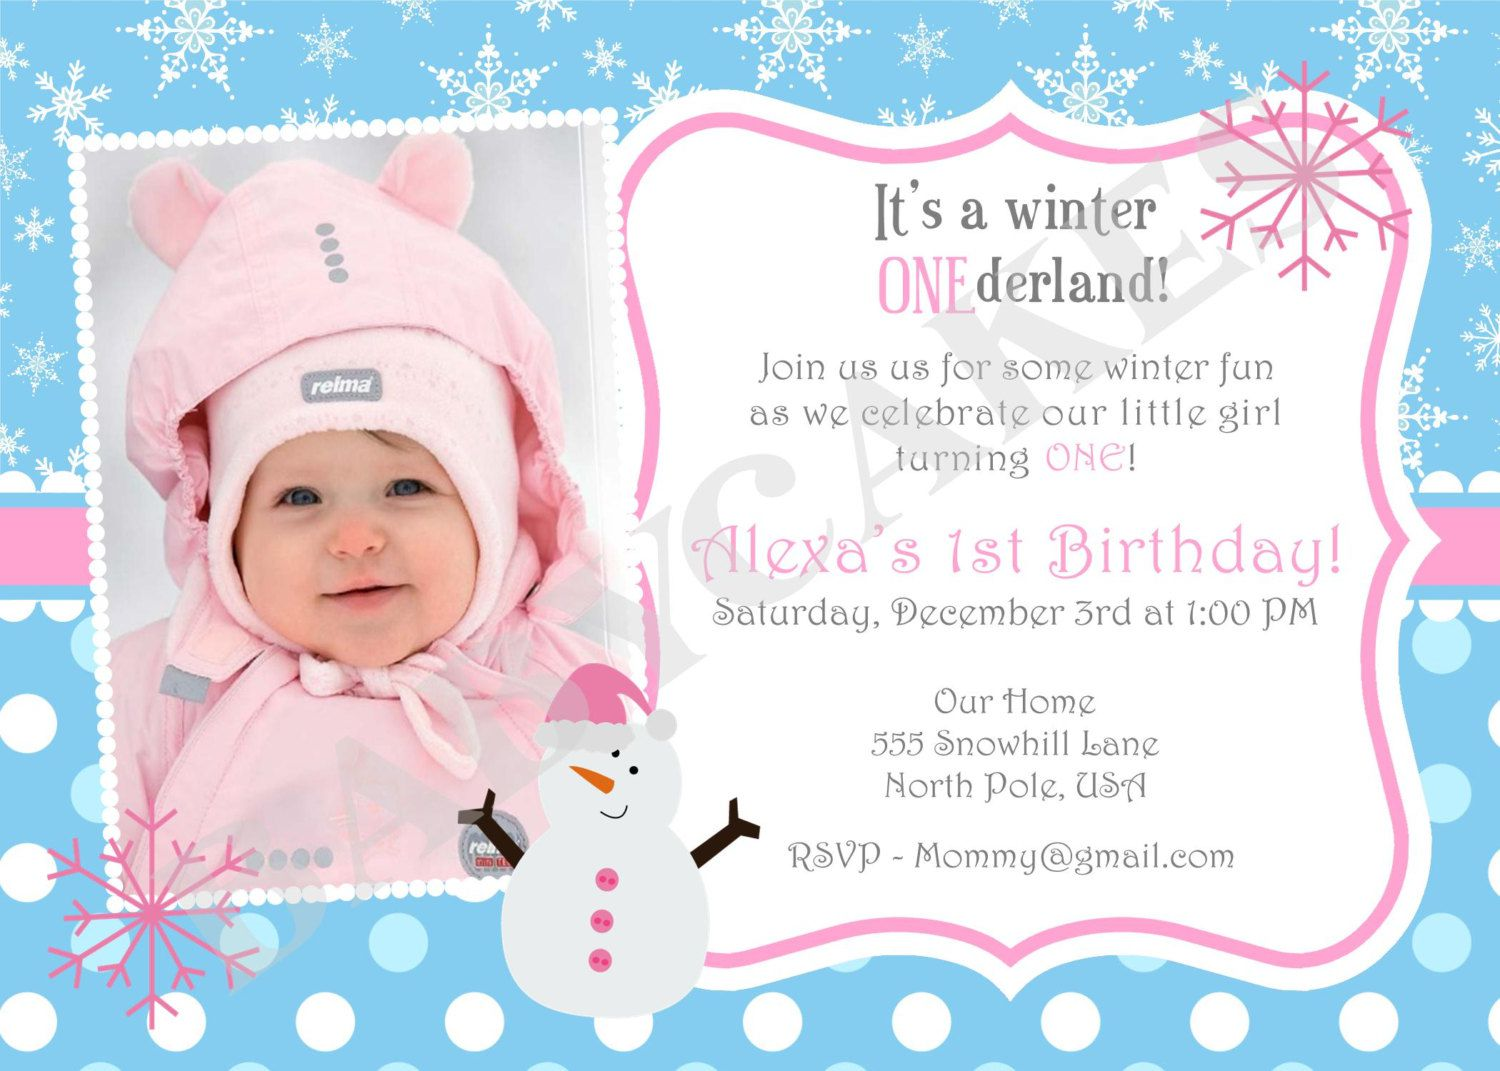 birthday party invitation wording for 1 year old ; birthday-invitation-wording-for-6-year-old